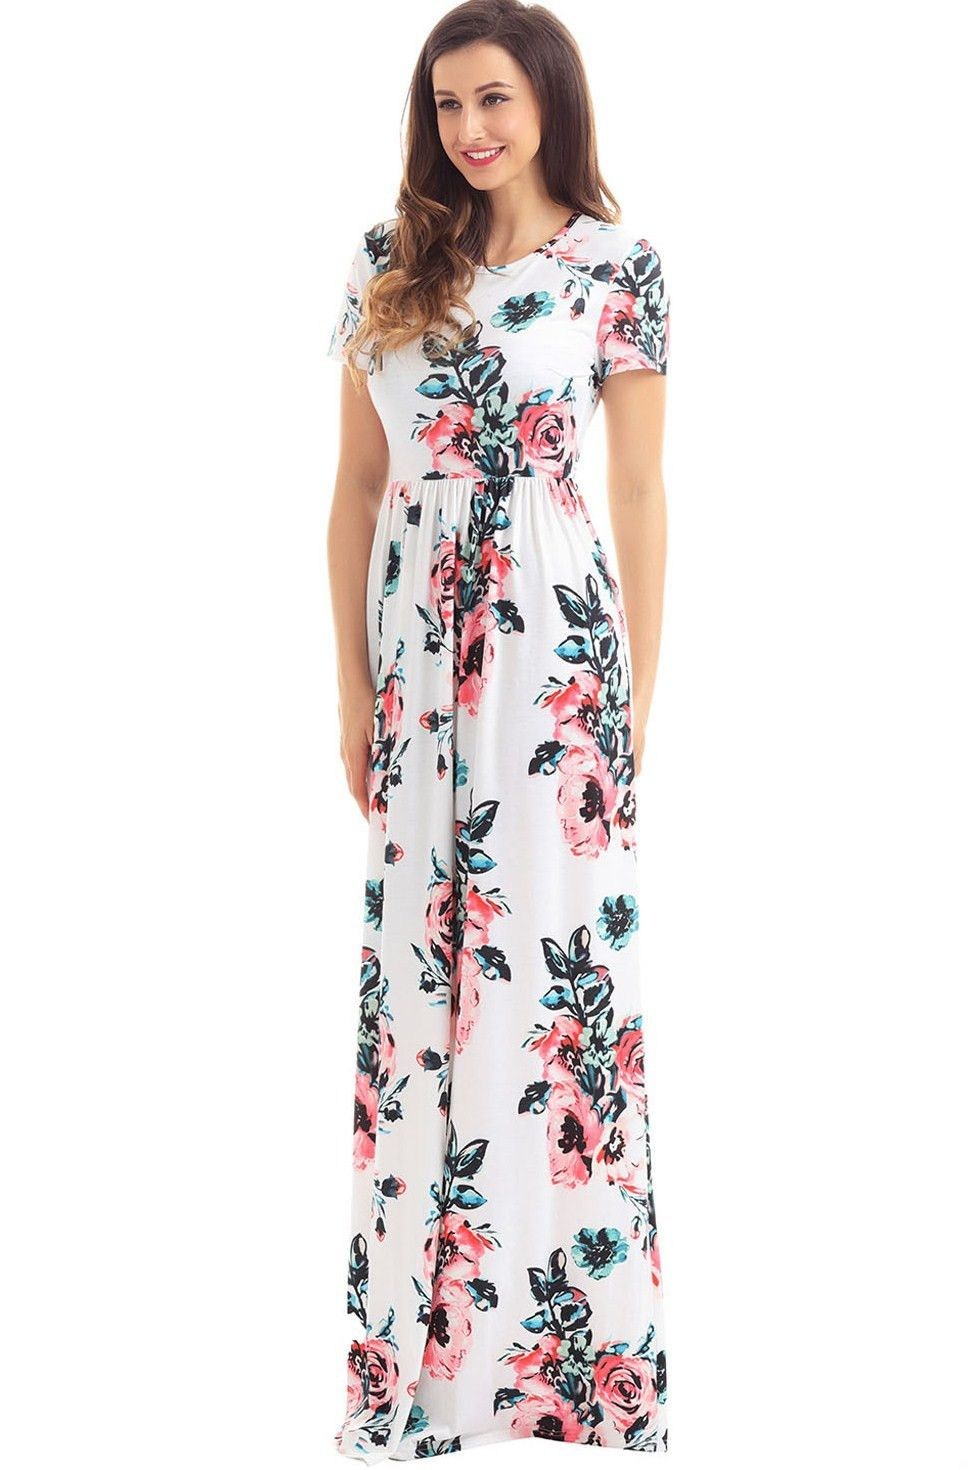 c21b011b5e9 Chic Pockets Short Sleeve White Floral Maxi Dress in 2019